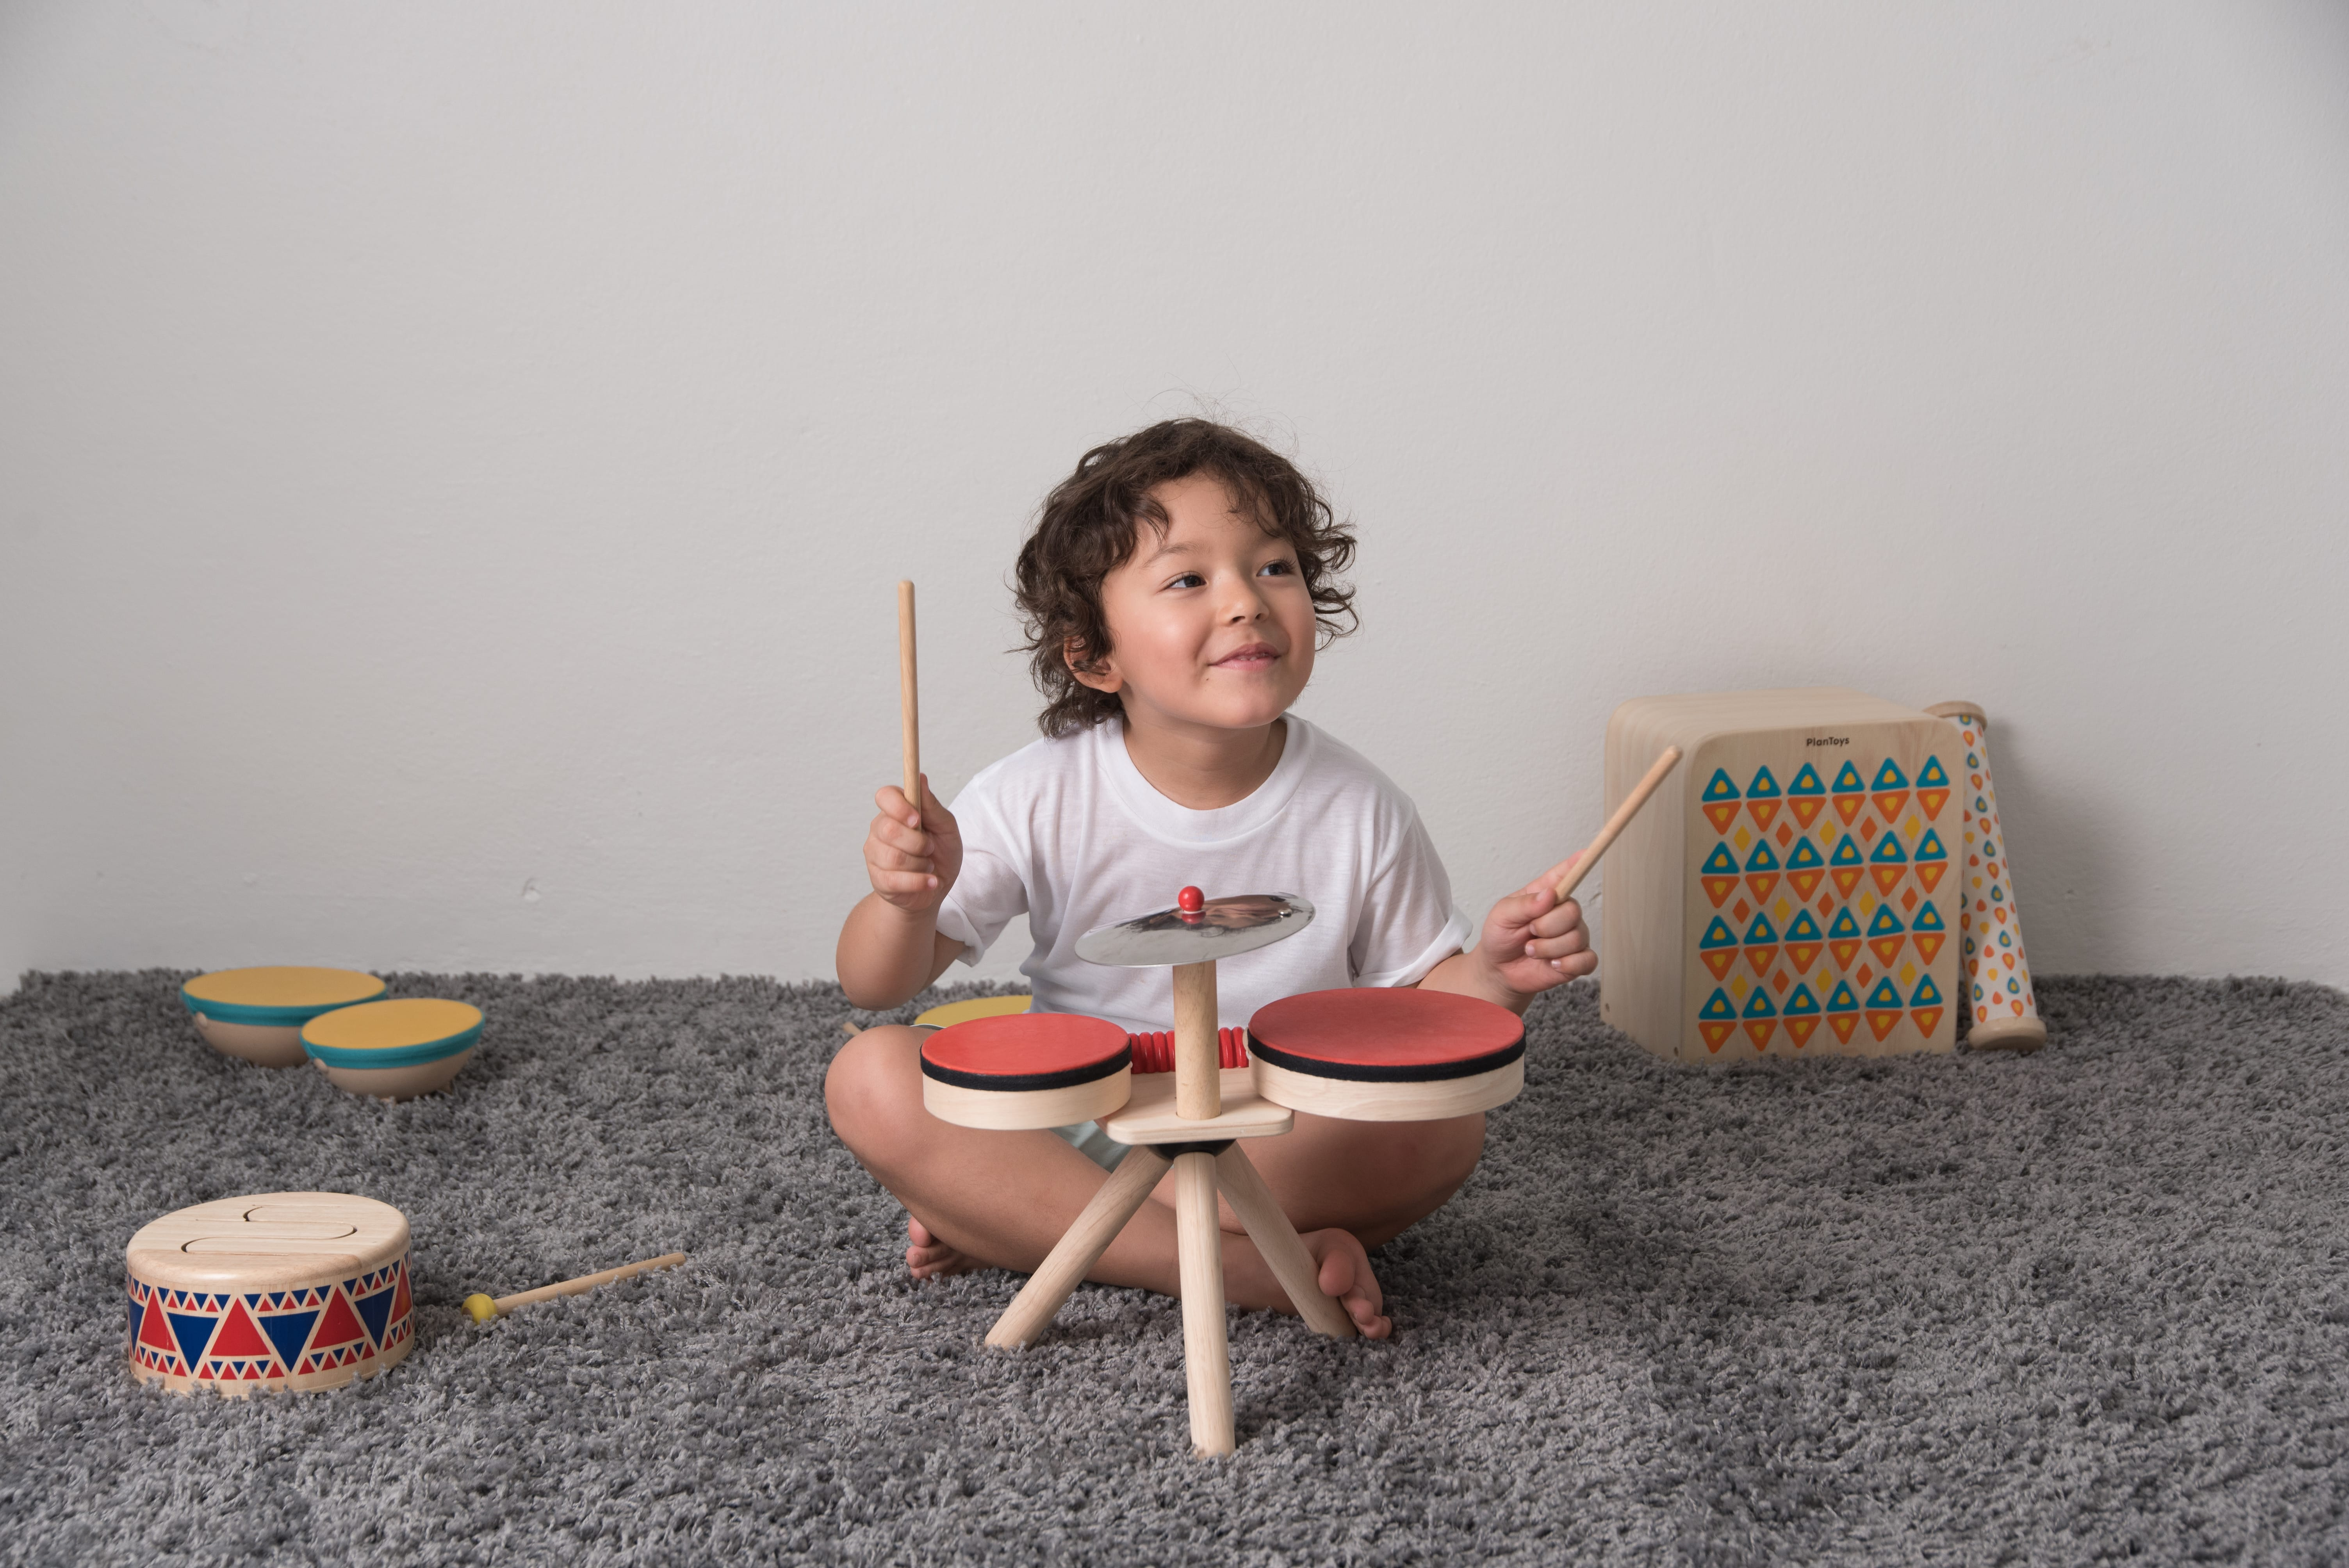 6410_PlanToys_MUSICAL_BAND_Music_Musical_Auditory_Concentration_Emotion_Coordination_Creative_3yrs_Wooden_toys_Education_toys_Safety_Toys_Non-toxic_1.jpg